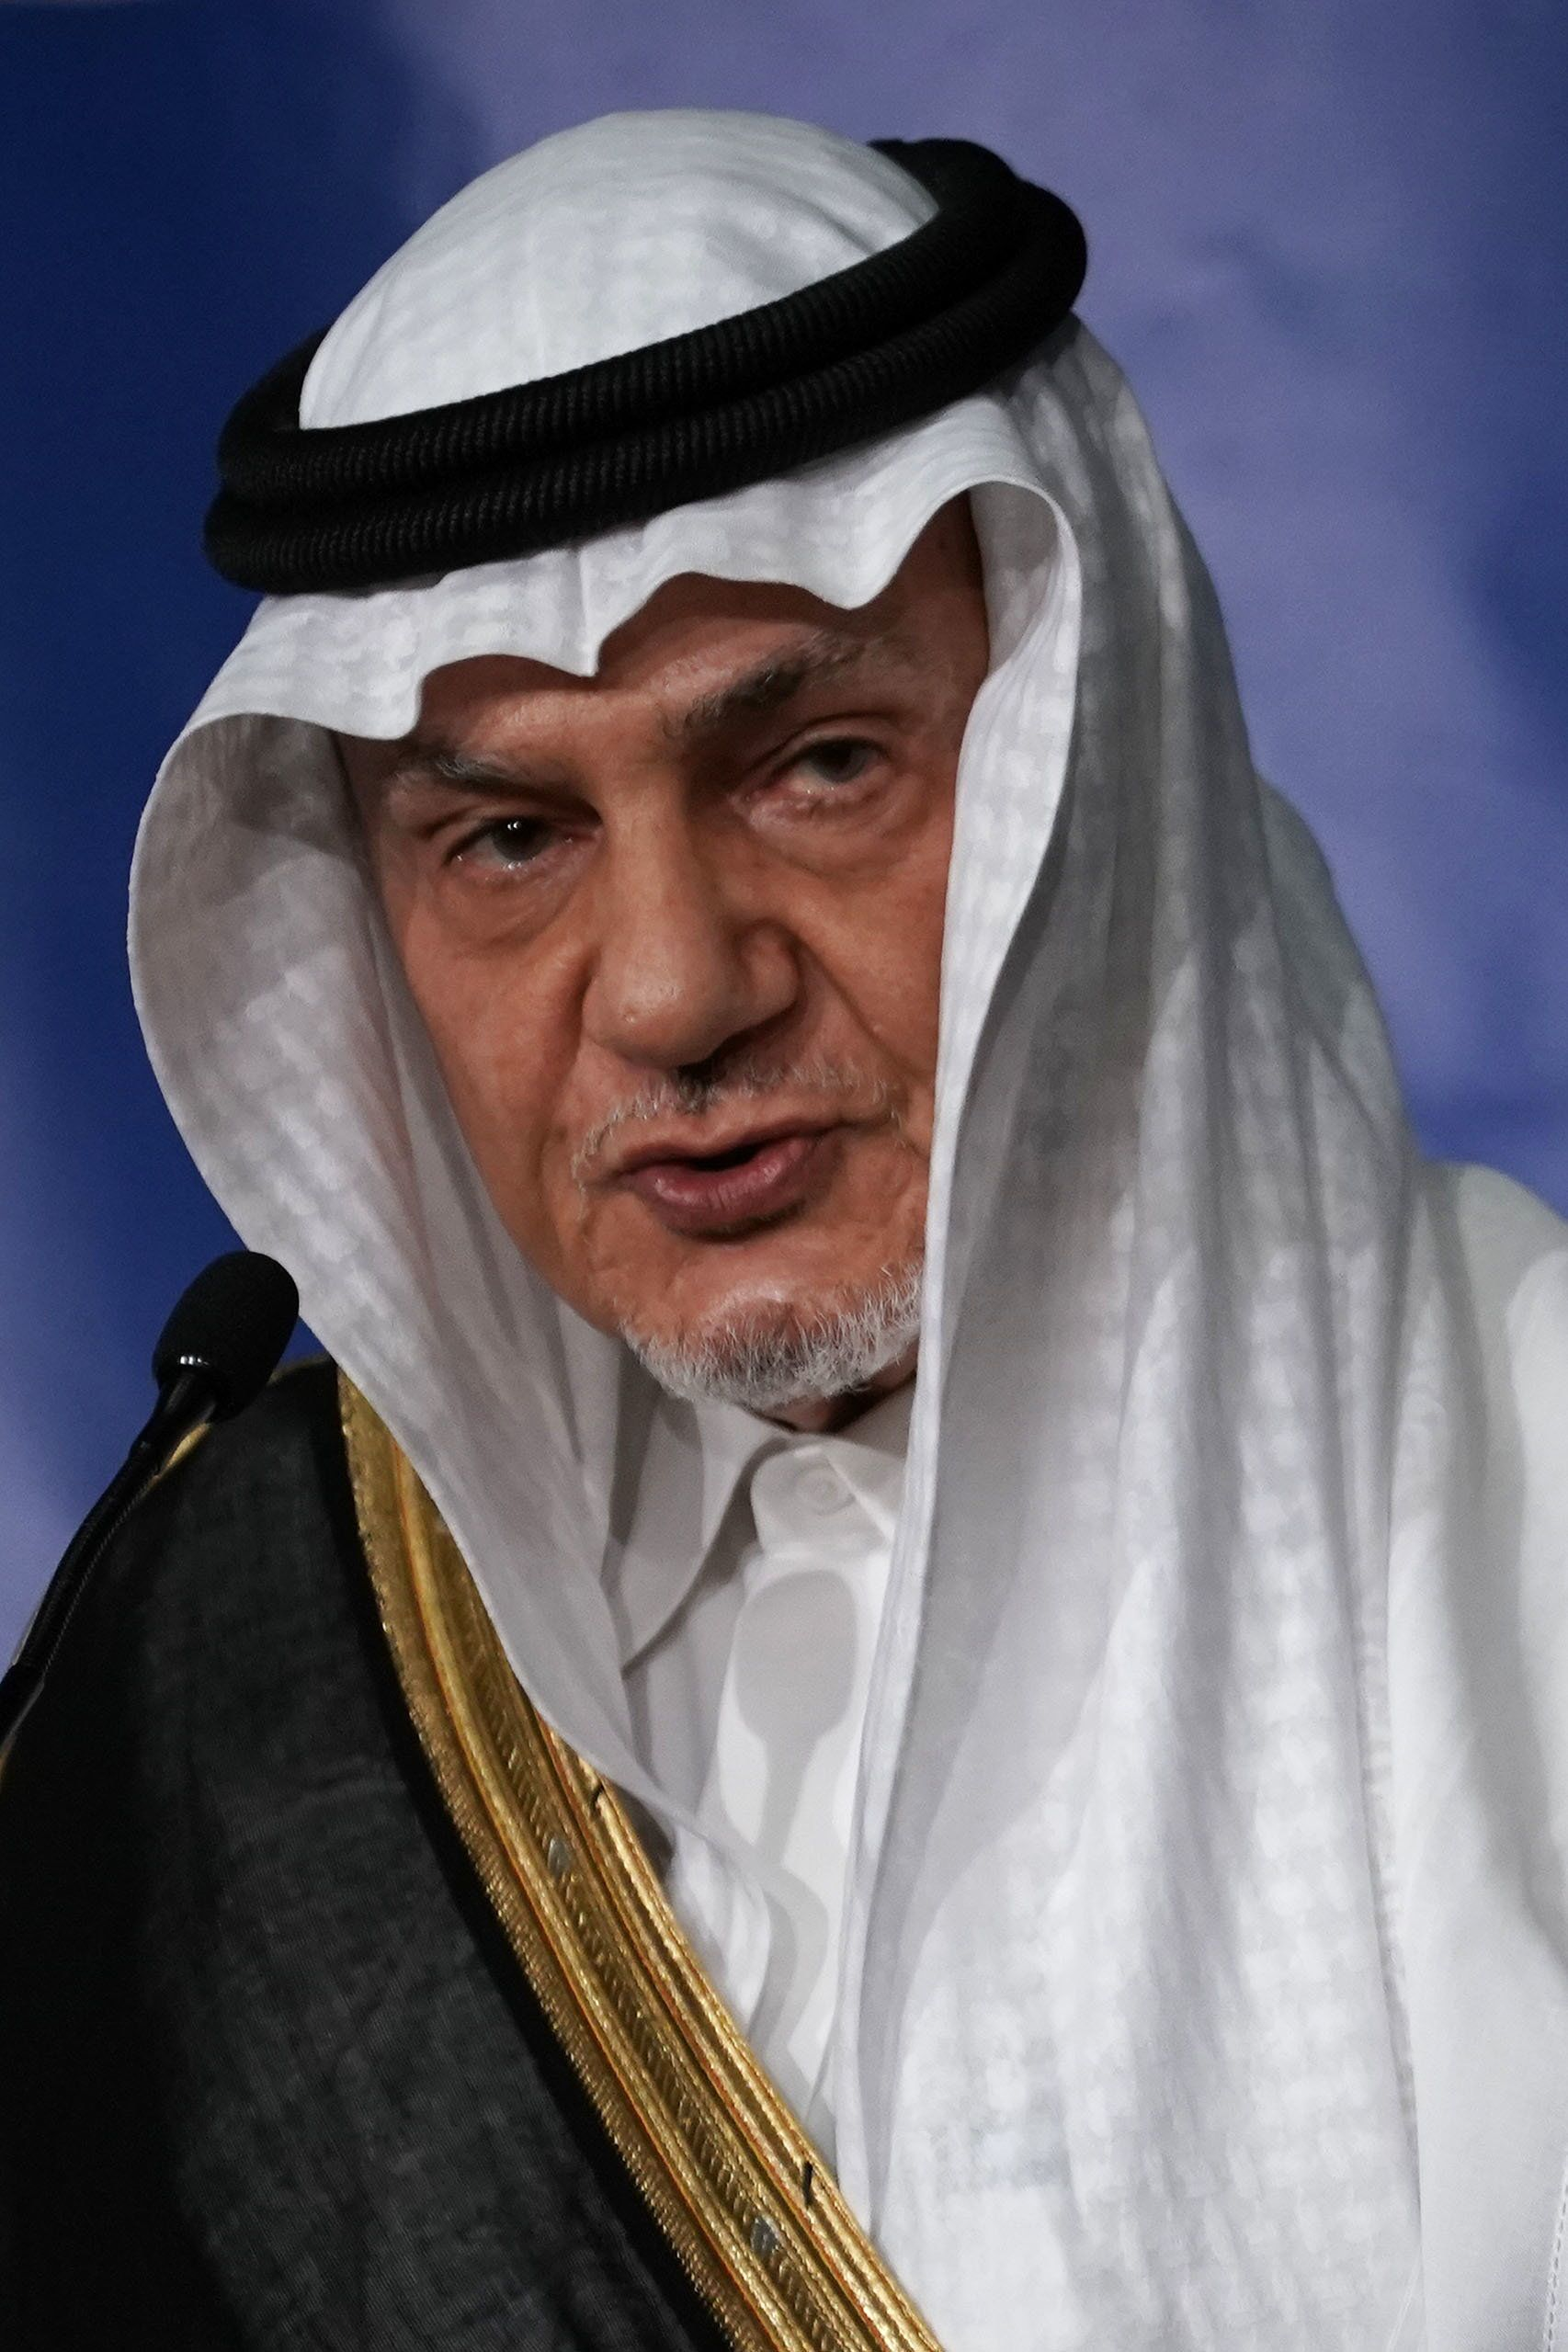 WASHINGTON, DC - OCTOBER 31: Former Saudi Ambassador to the United States Turki Al Faisal Al-Saud speaks during the 27th annual Arab-U.S. Policymakers conference on 'What Paths Forward for America In and With the Arab Region,' hosted by the National Council on U.S.-Arab Relations, October 31, 2018 in Washington, DC. Ambassador Turki Al Faisal Al-Saud delivered keynote address on 'How Best to Proceed in the U.S.-Arab Relationship?'  (Photo by Alex Wong/Getty Images)